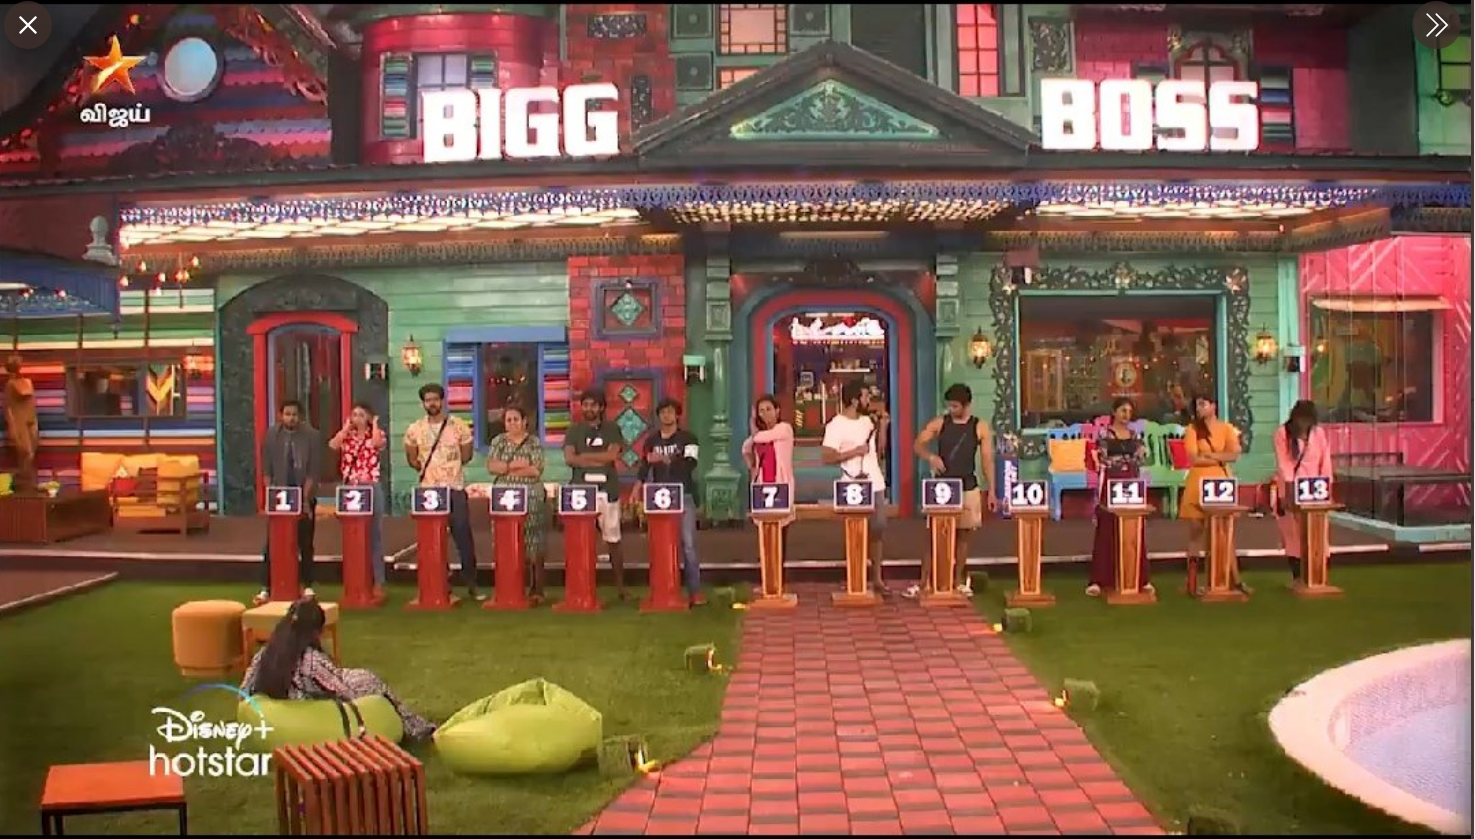 bigg boss 4 tamil call center task positions